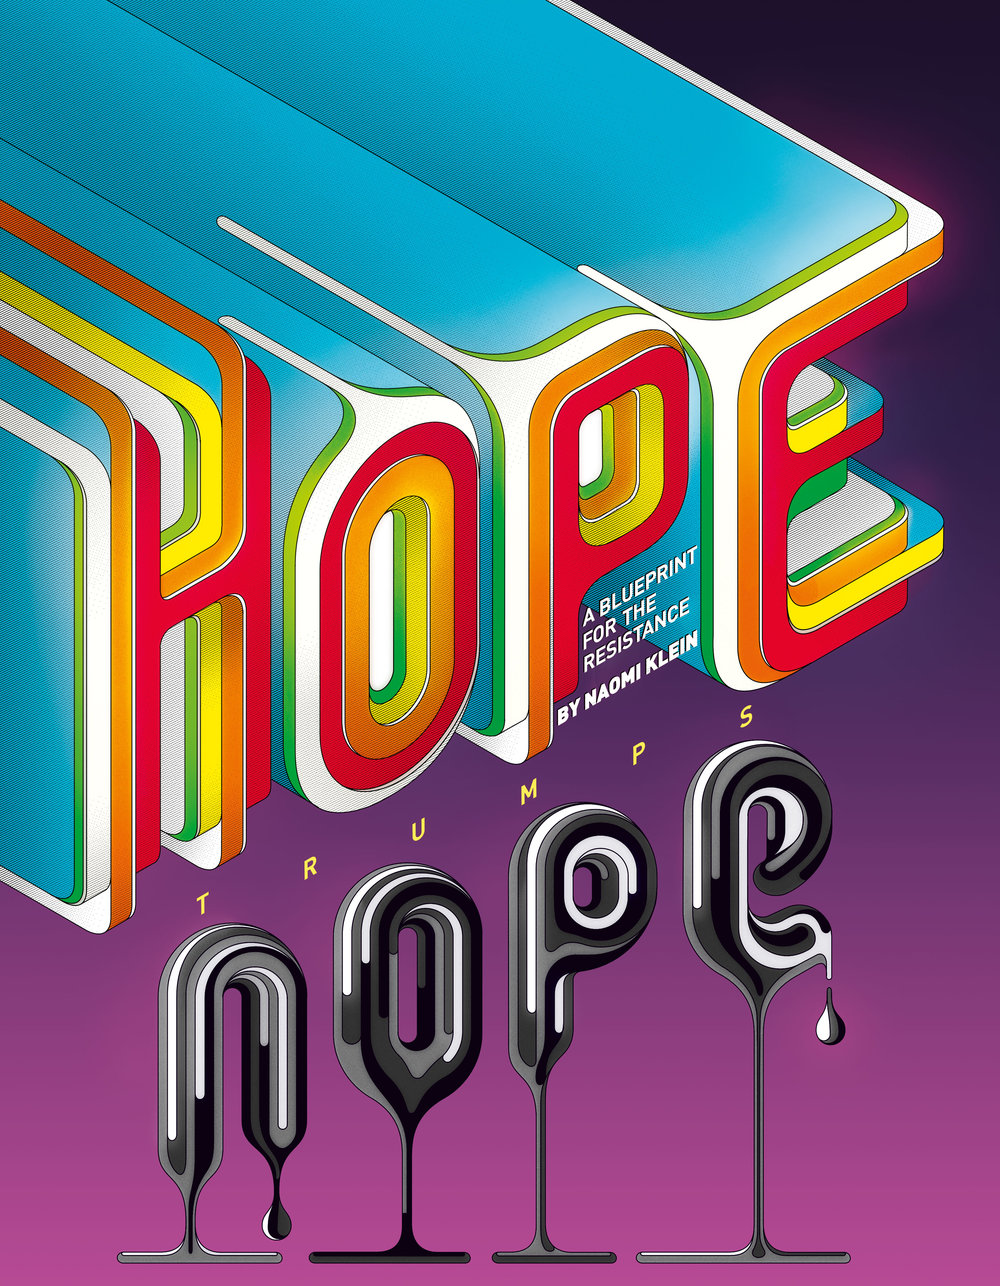 CharlesWilliams-Sierra_cover-Hope-Trumps-Nope.jpg